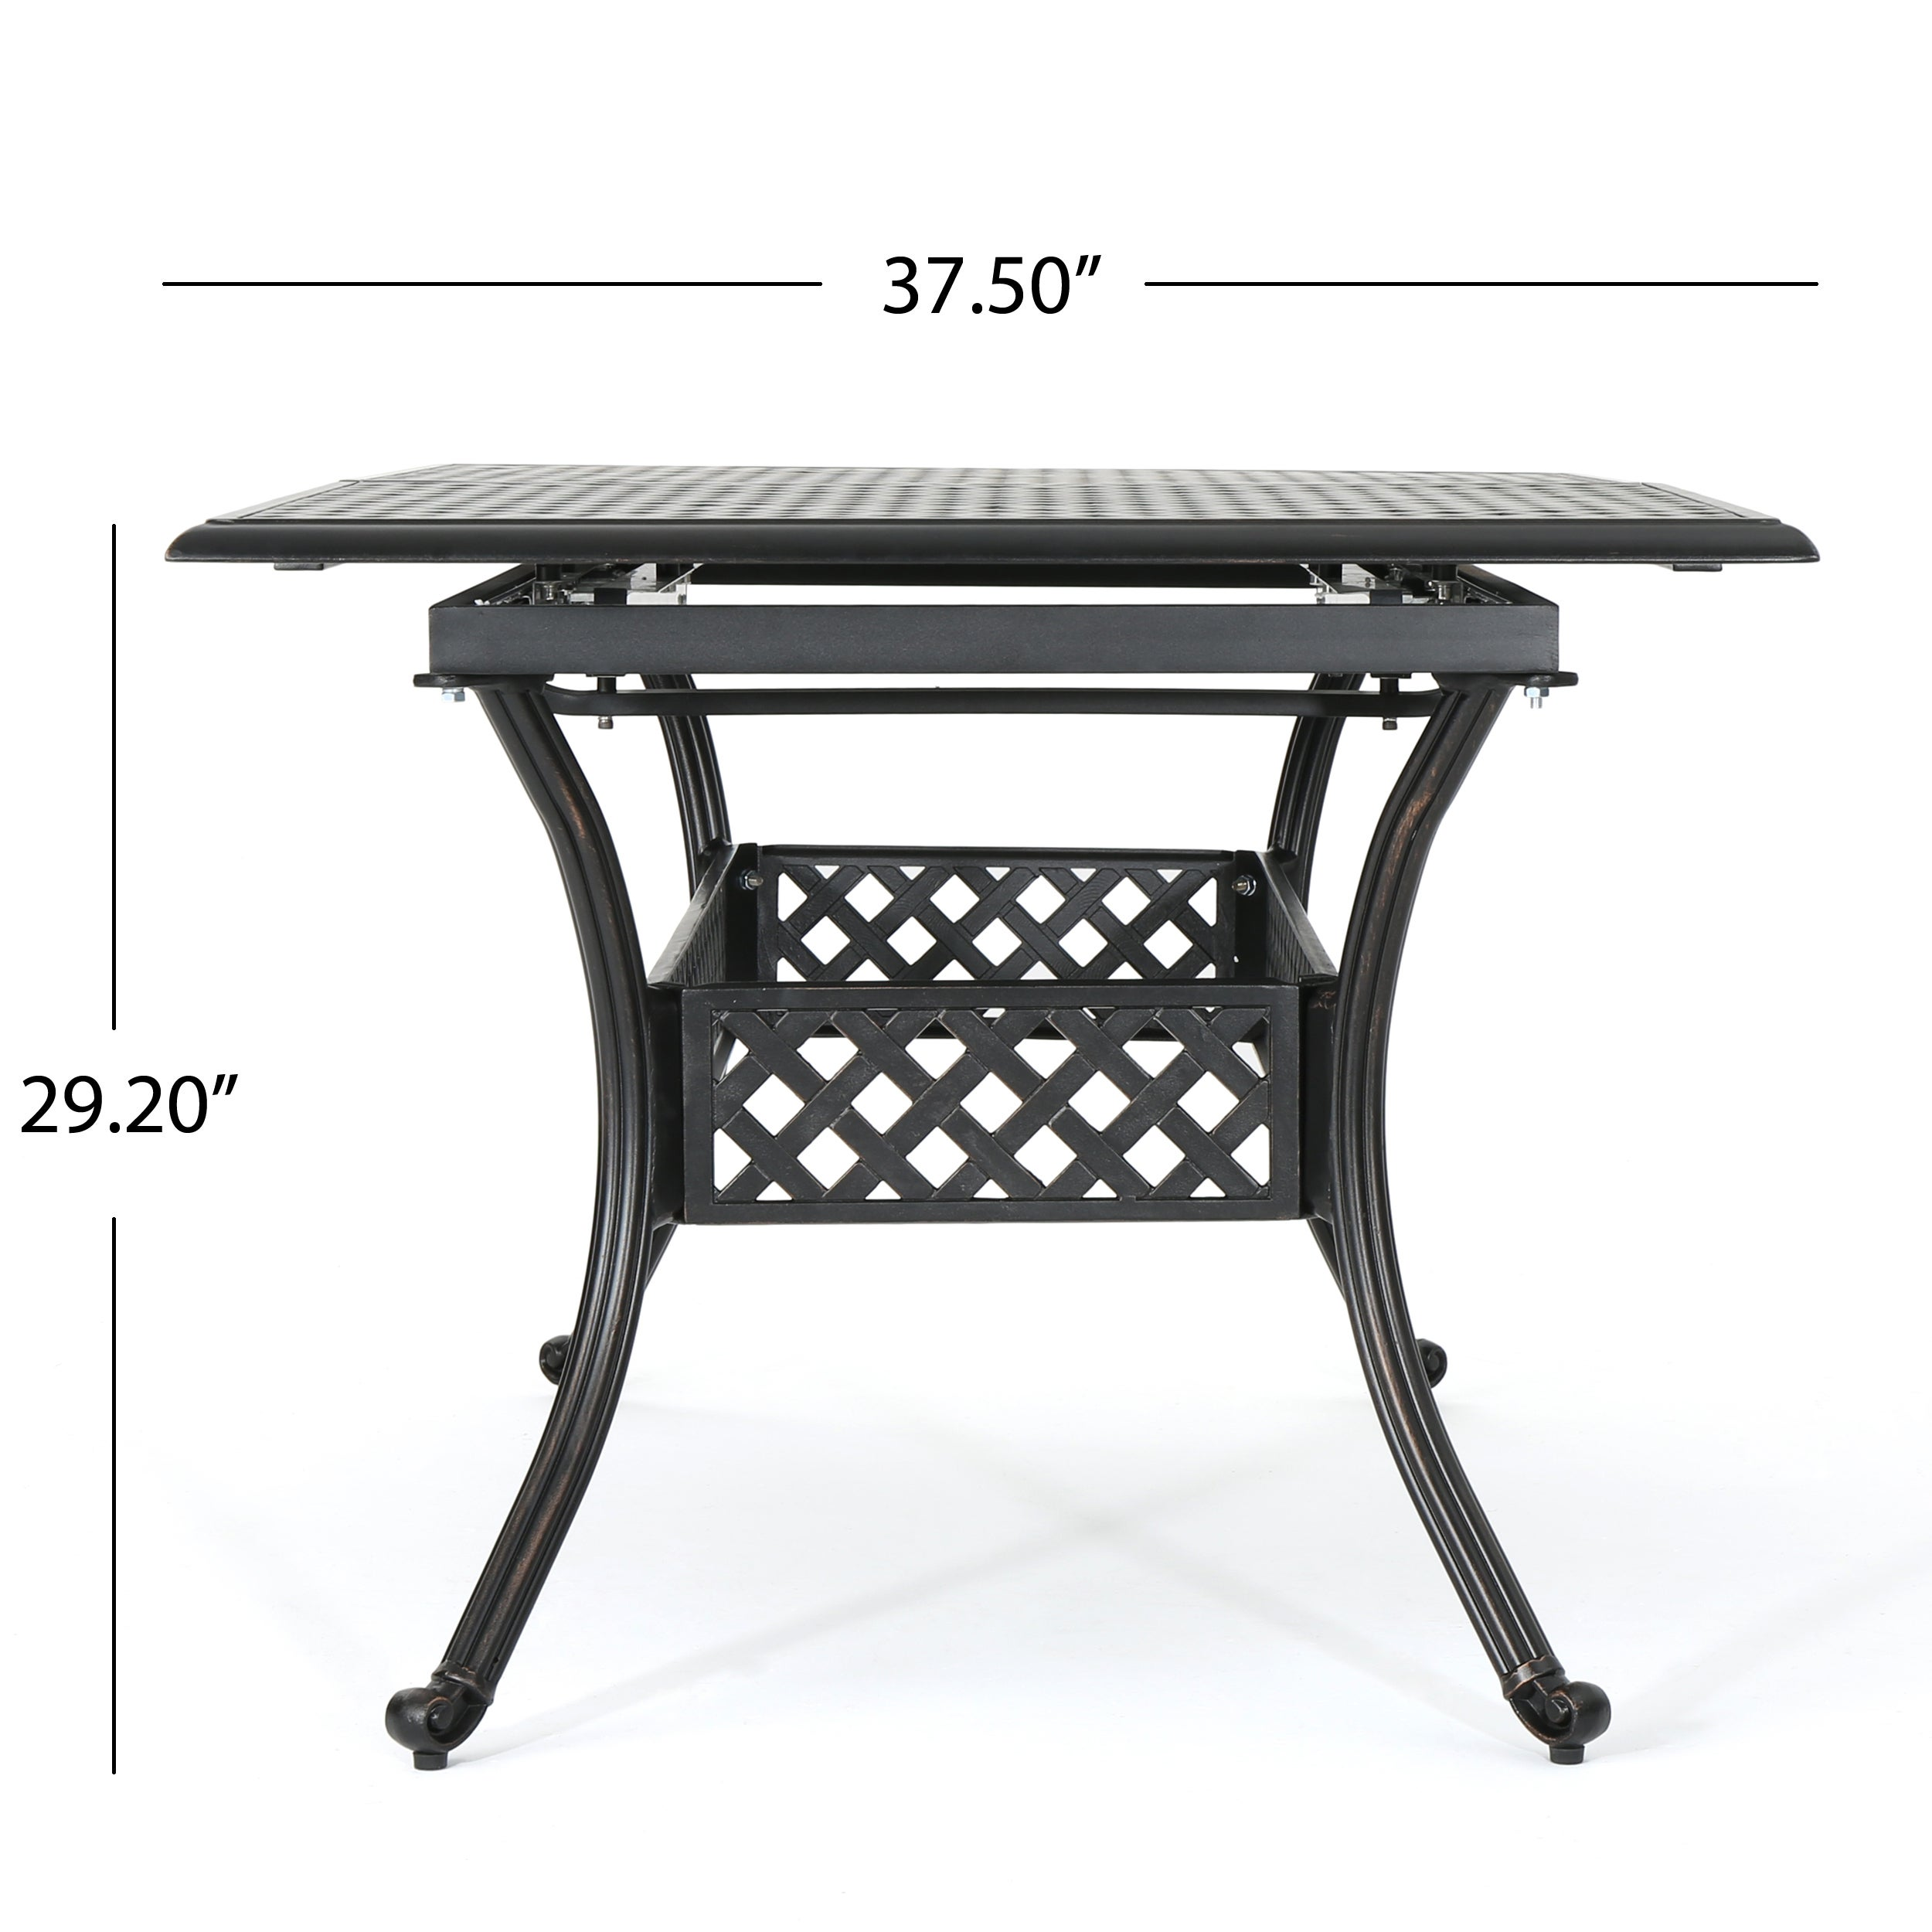 Aail Outdoor Cast Aluminum Expandable Rectangle Dining Table With Umbrella Hole By Christopher Knight Home On Free Shipping Today